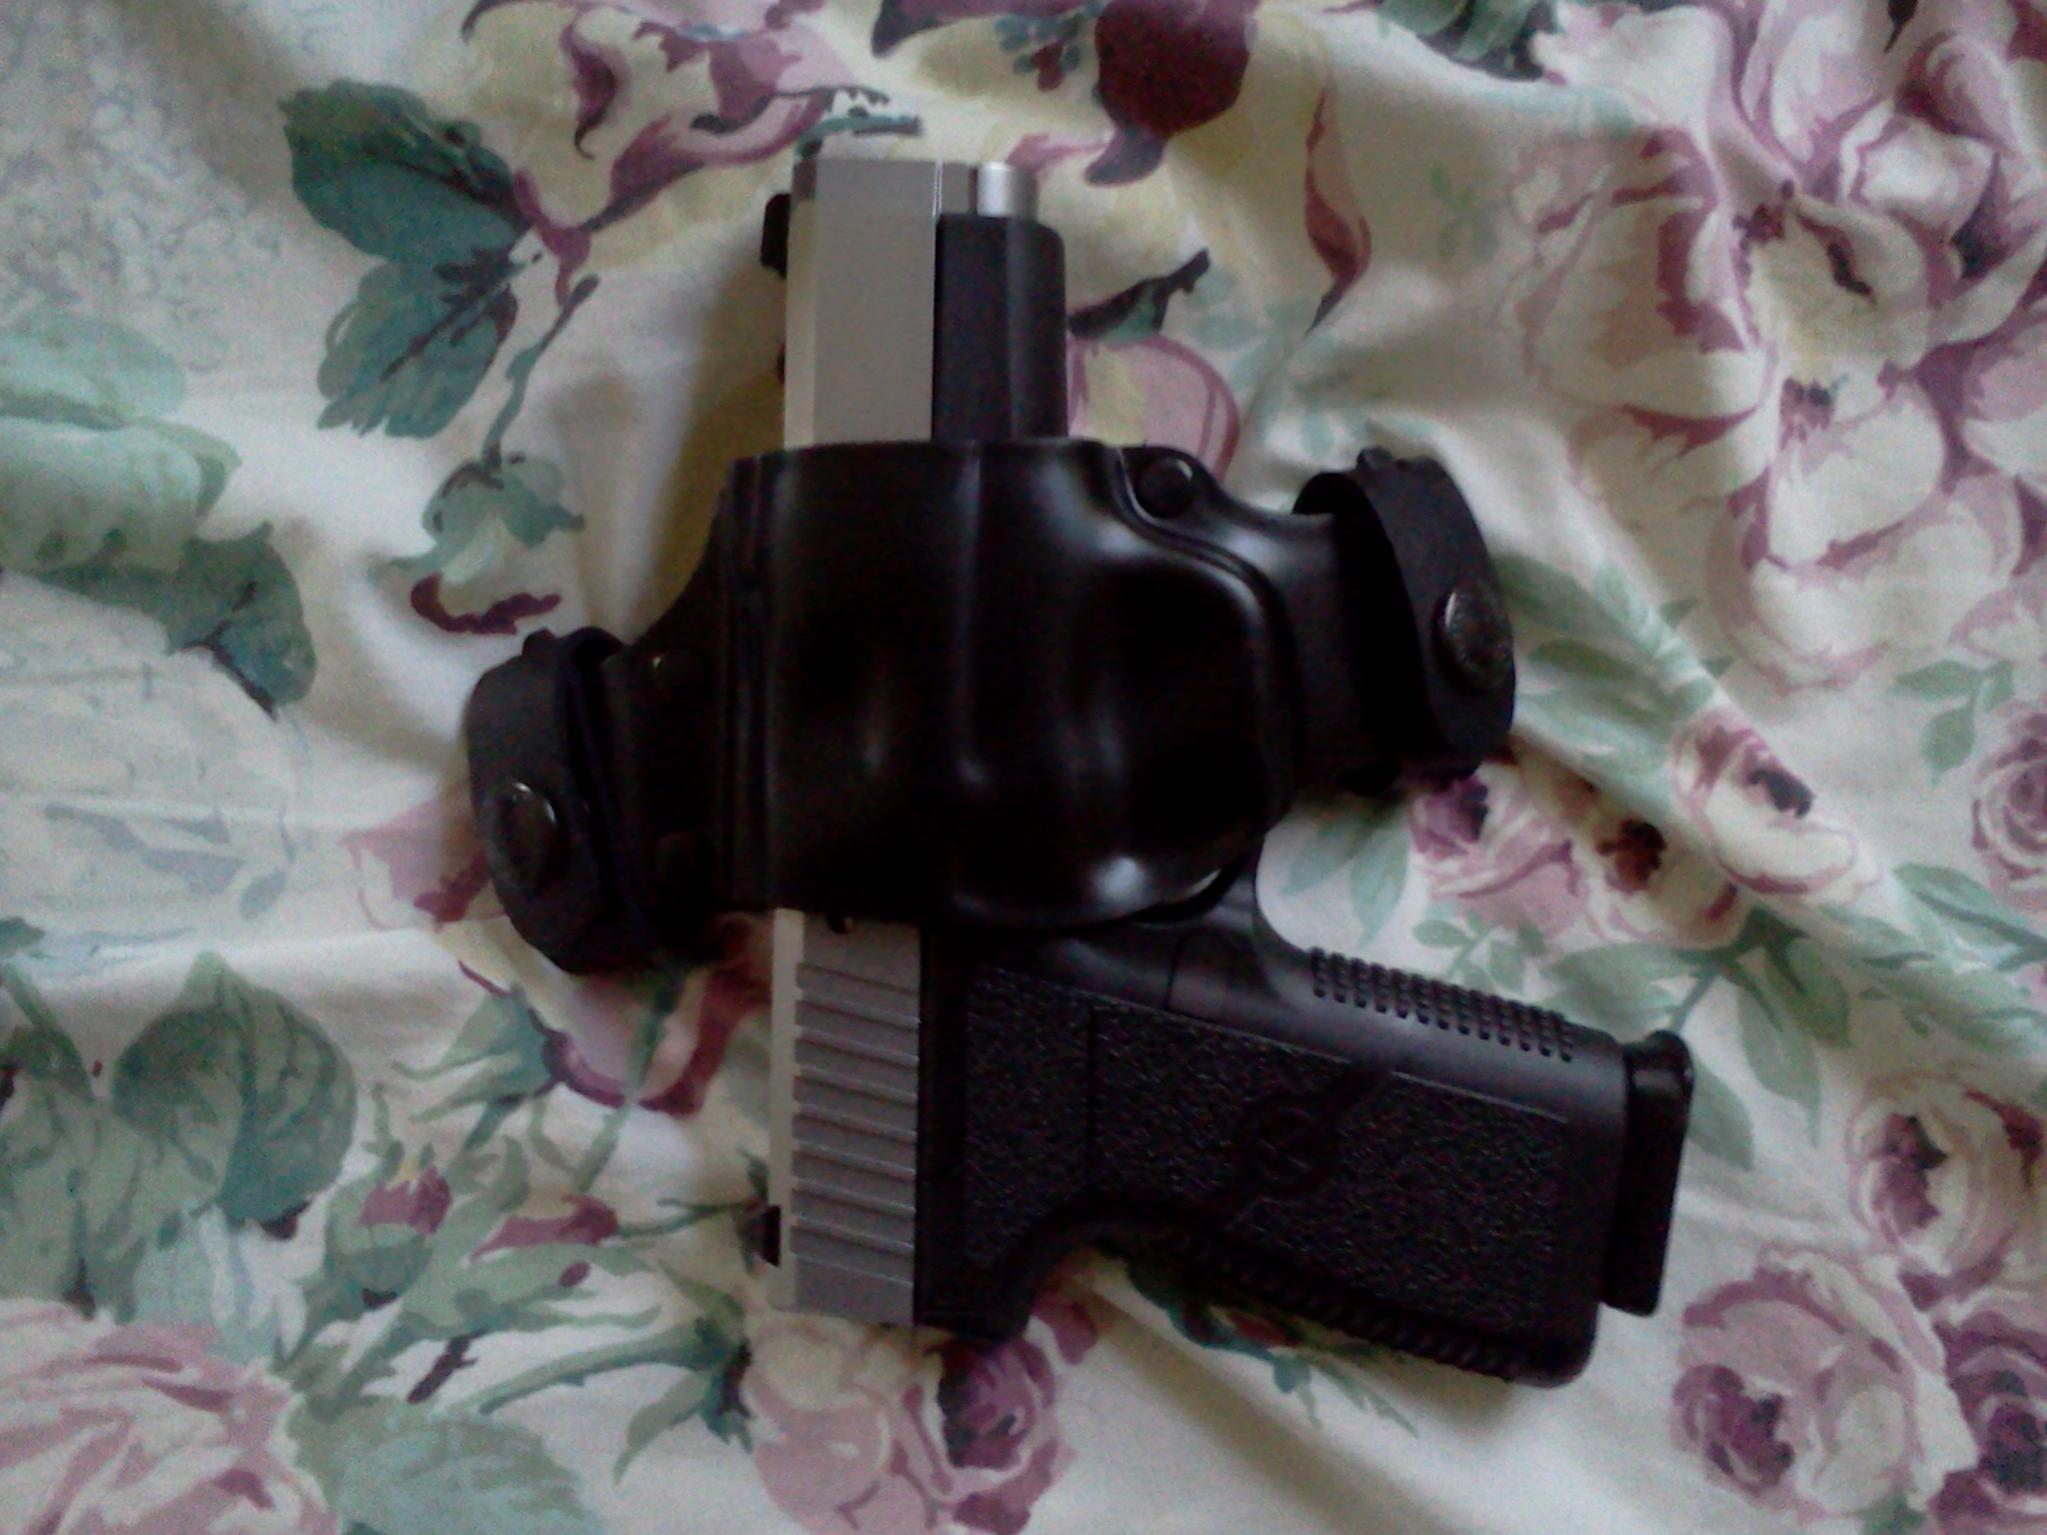 new holster came today-061113183157.jpg